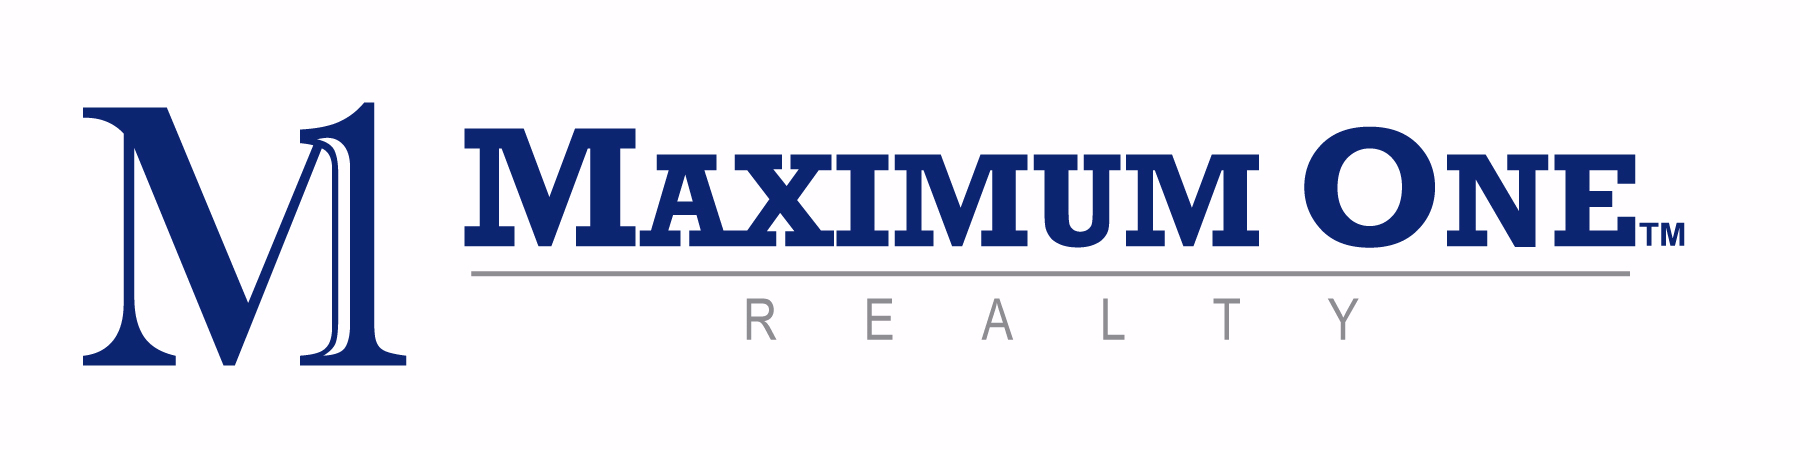 Maximum One Realty